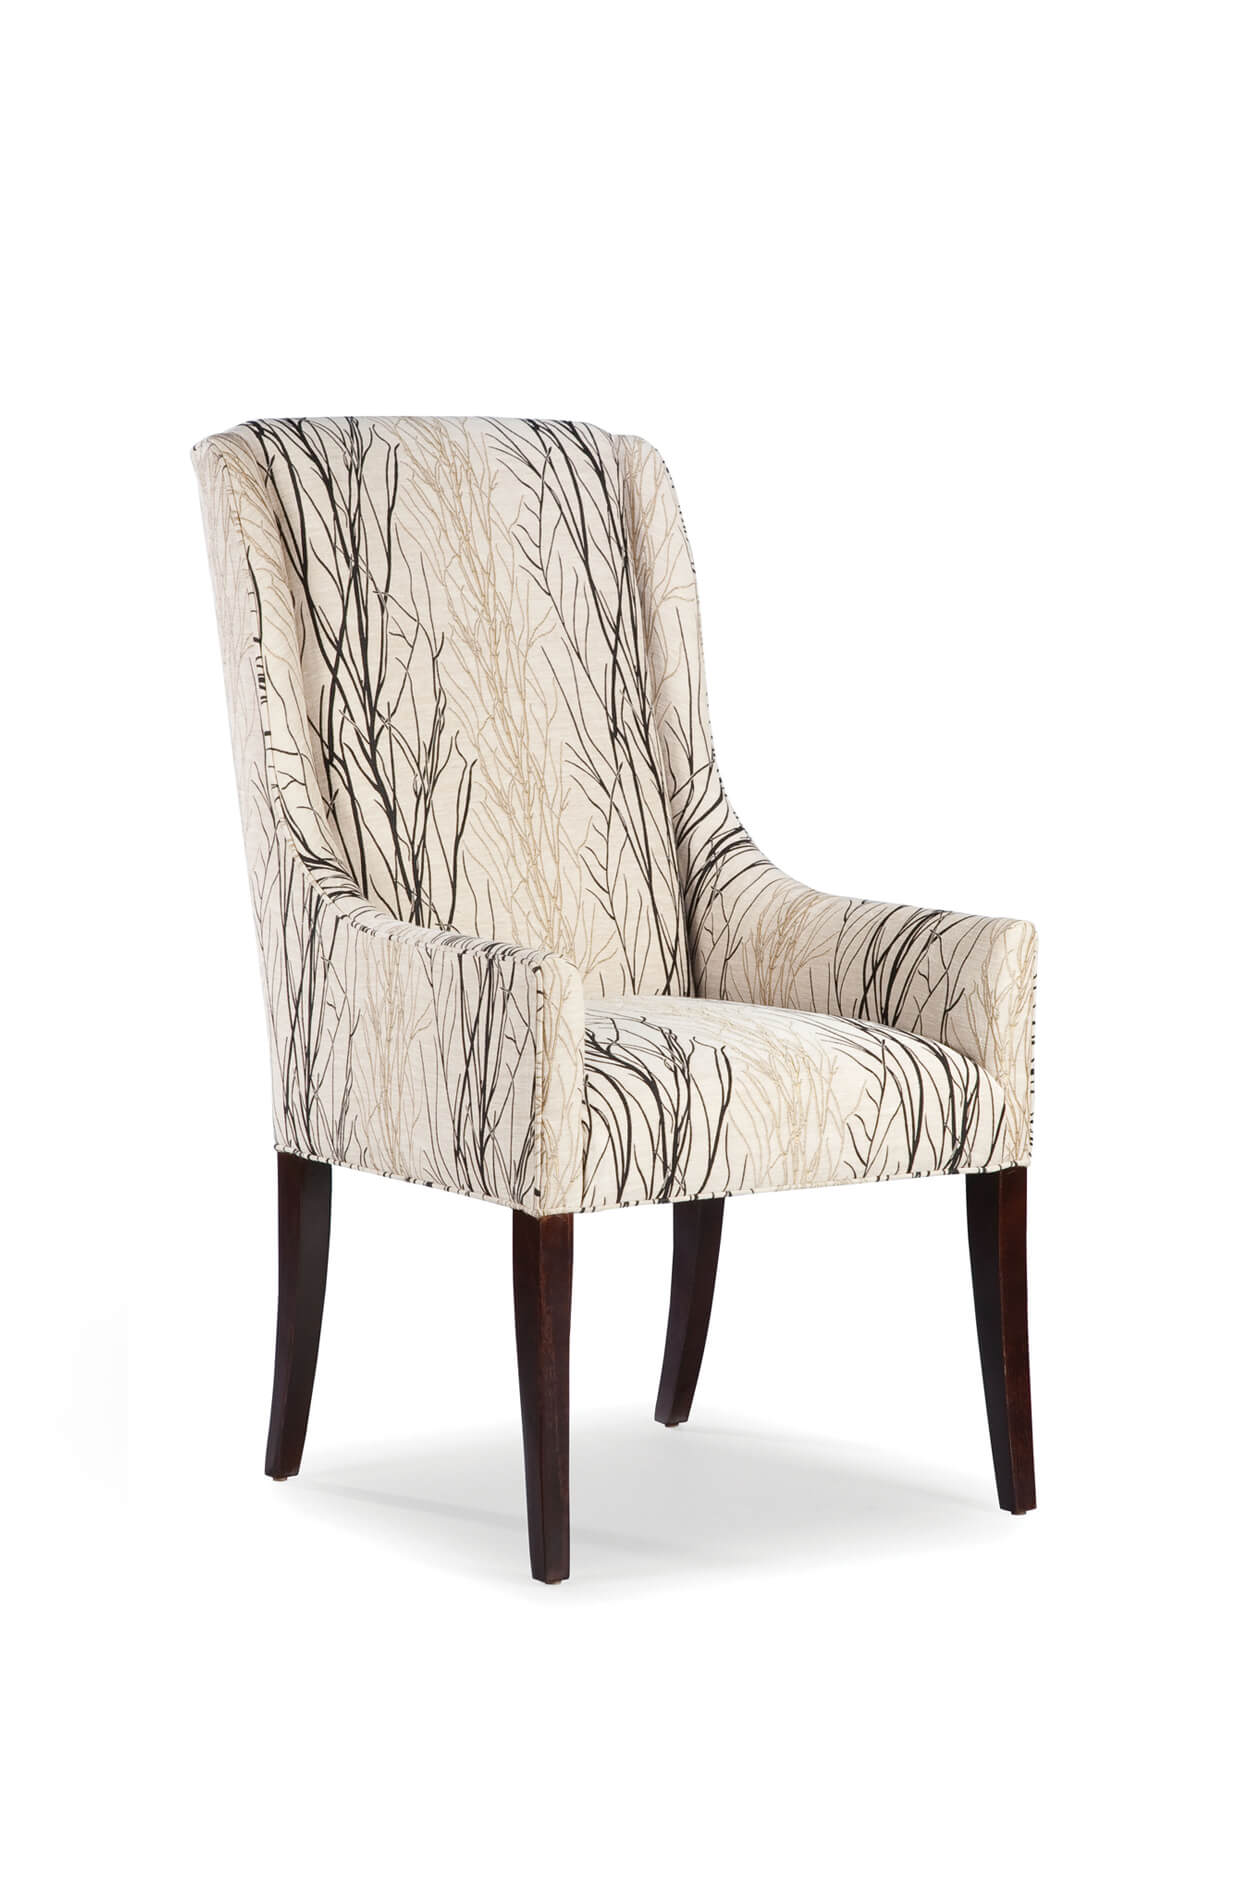 Fairfield's Dora High Back Upholstered Wooden Dining Chair with Arms